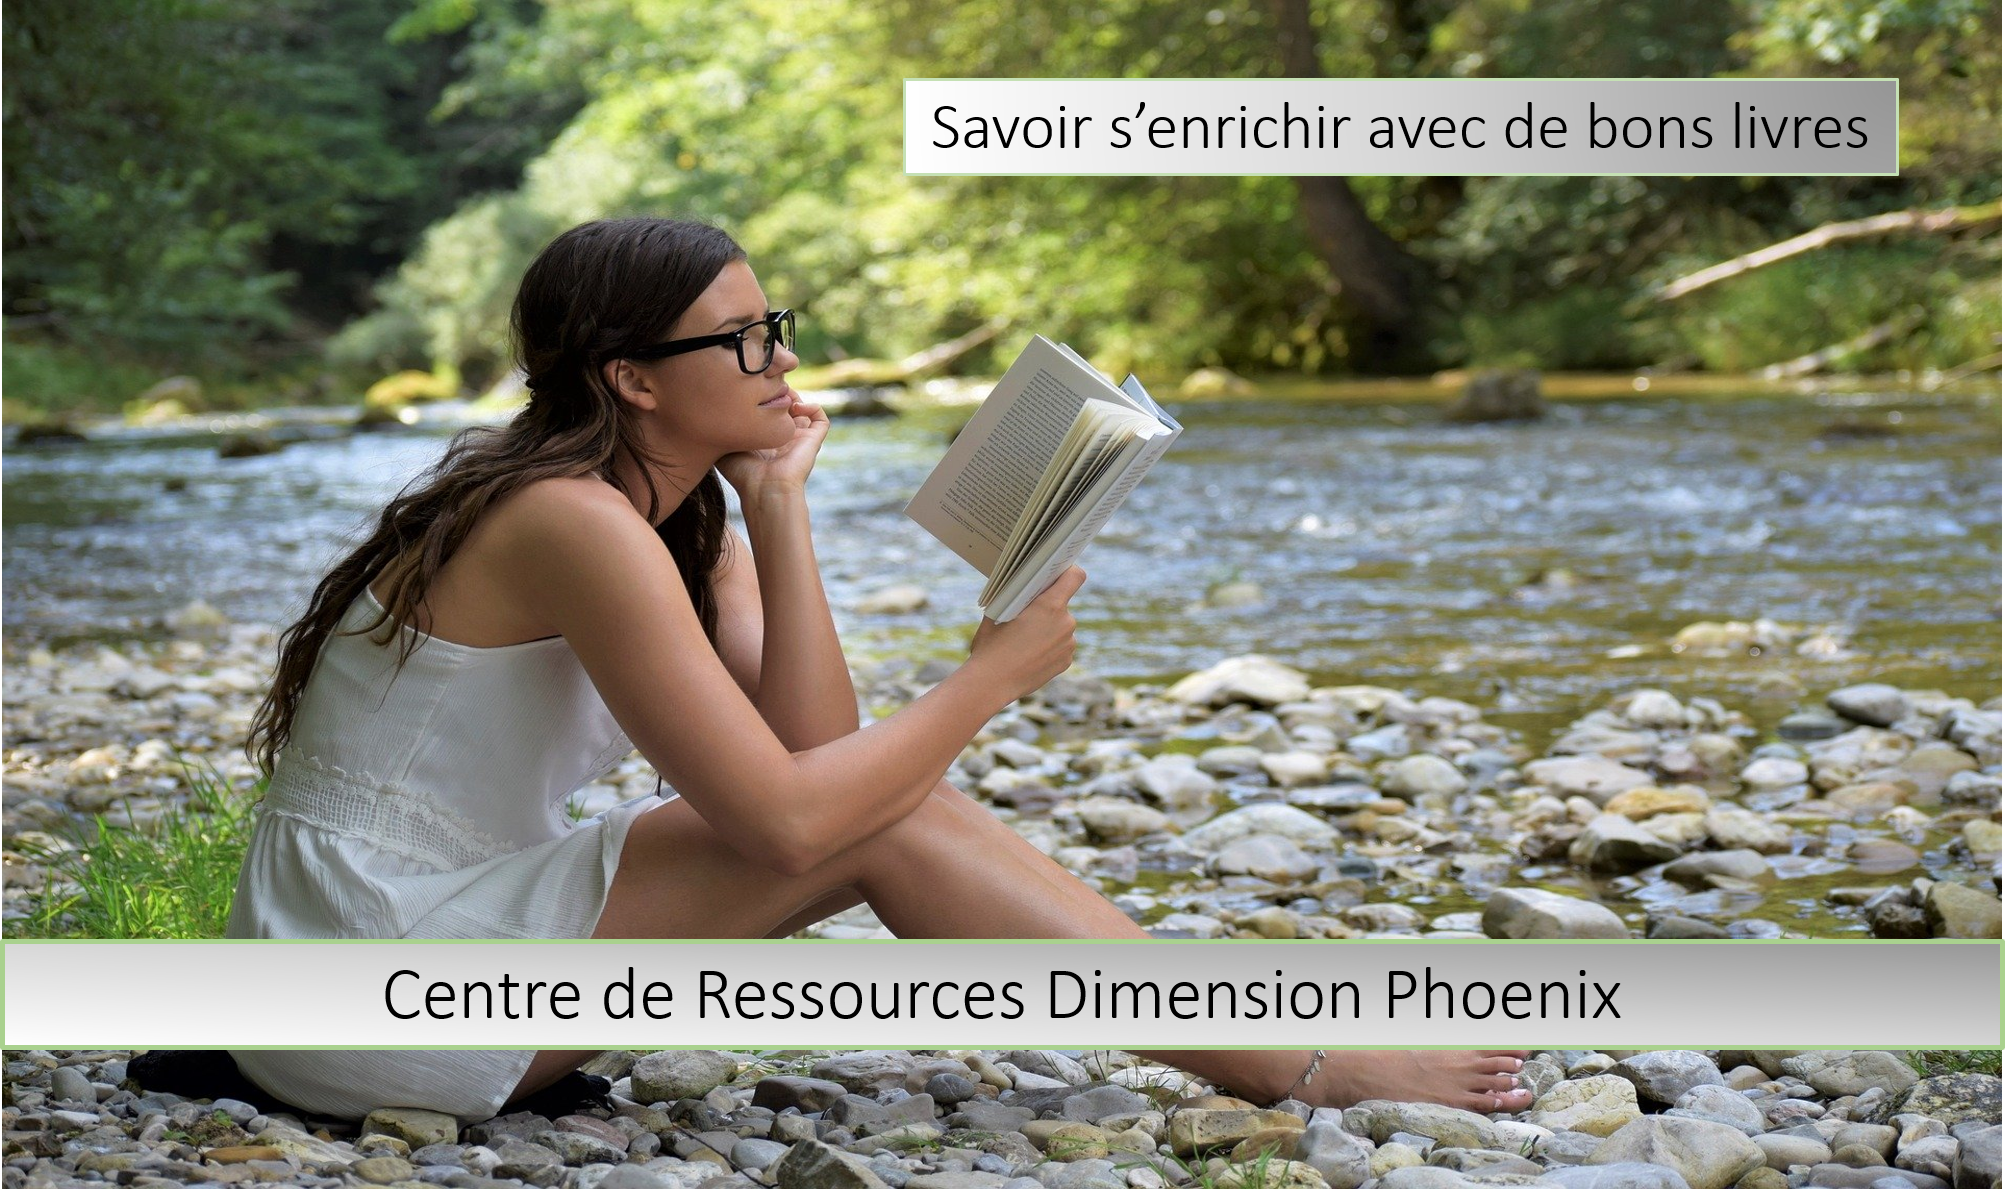 Centre de ressources Dimension Phoenix